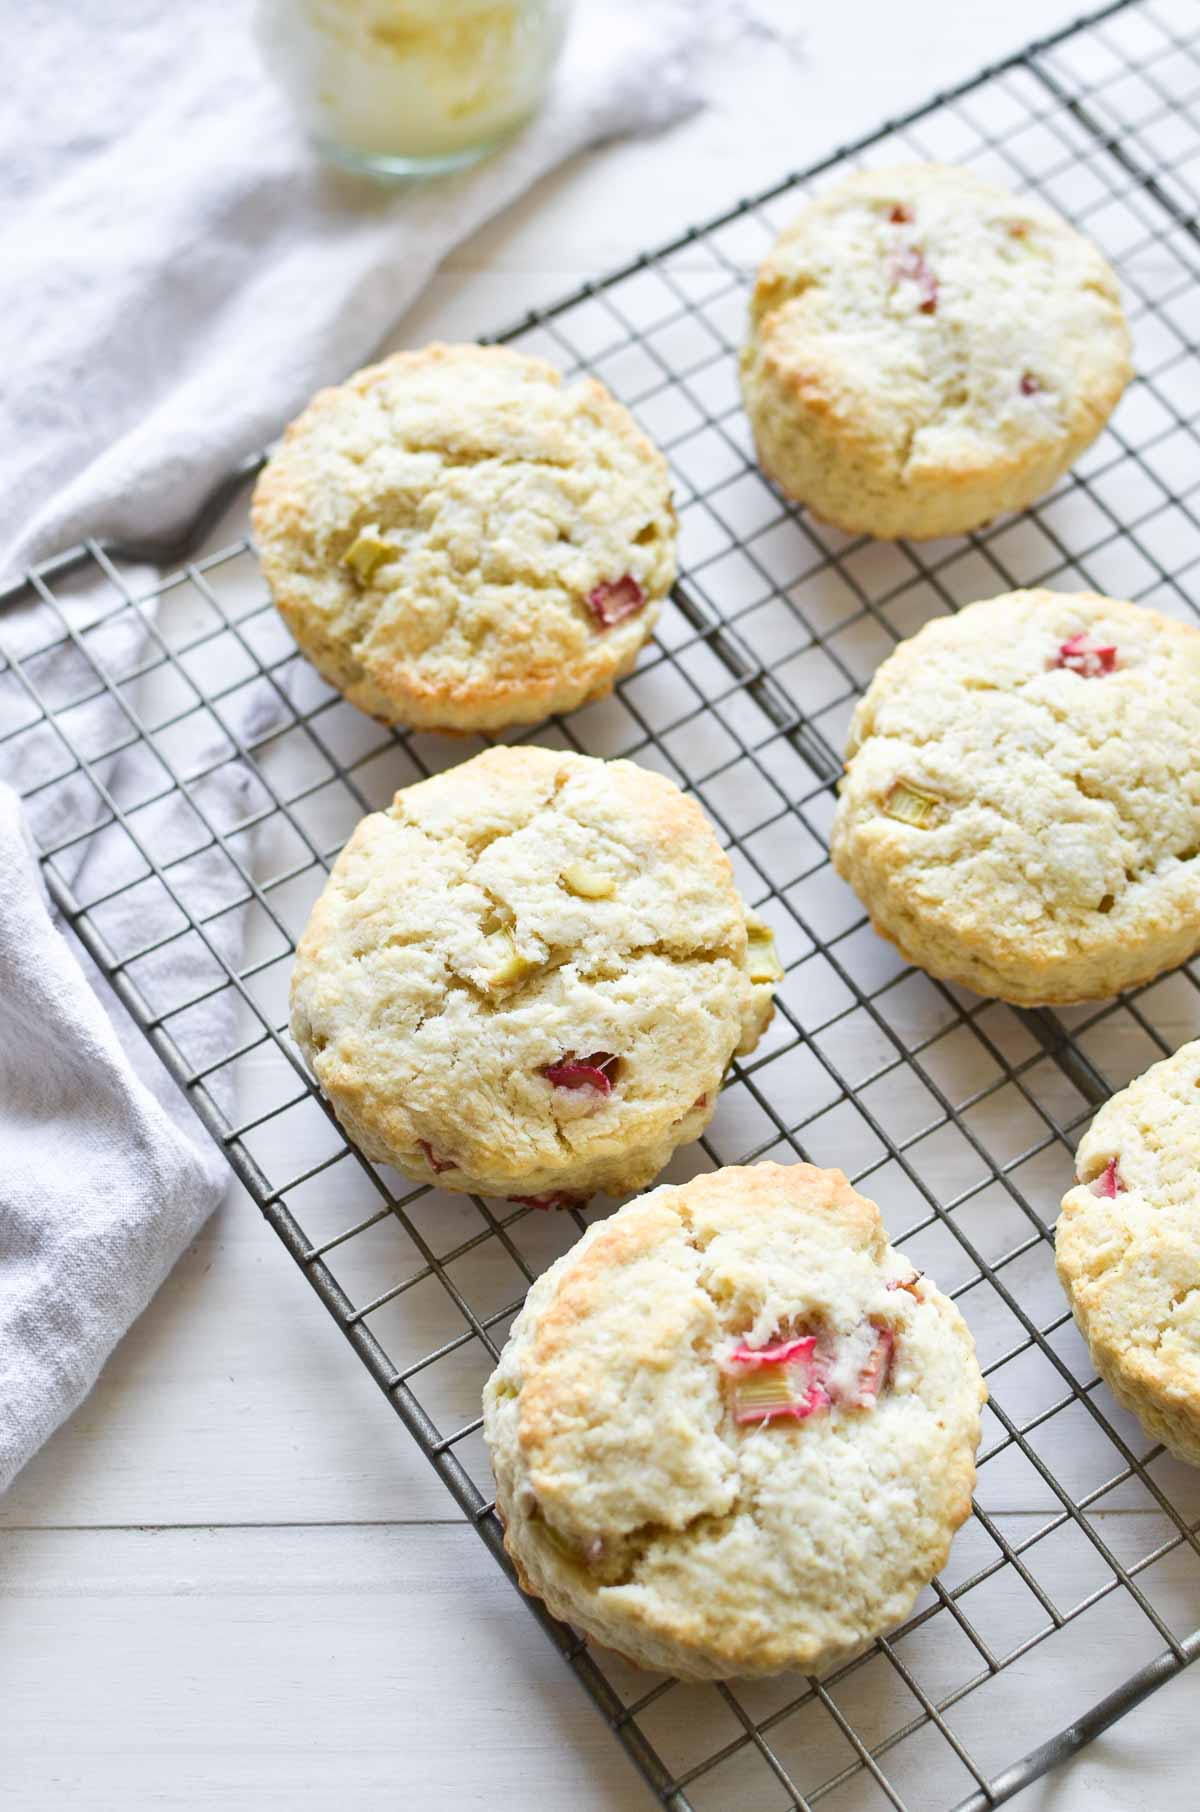 Rhubarb scones on a cooling rack.